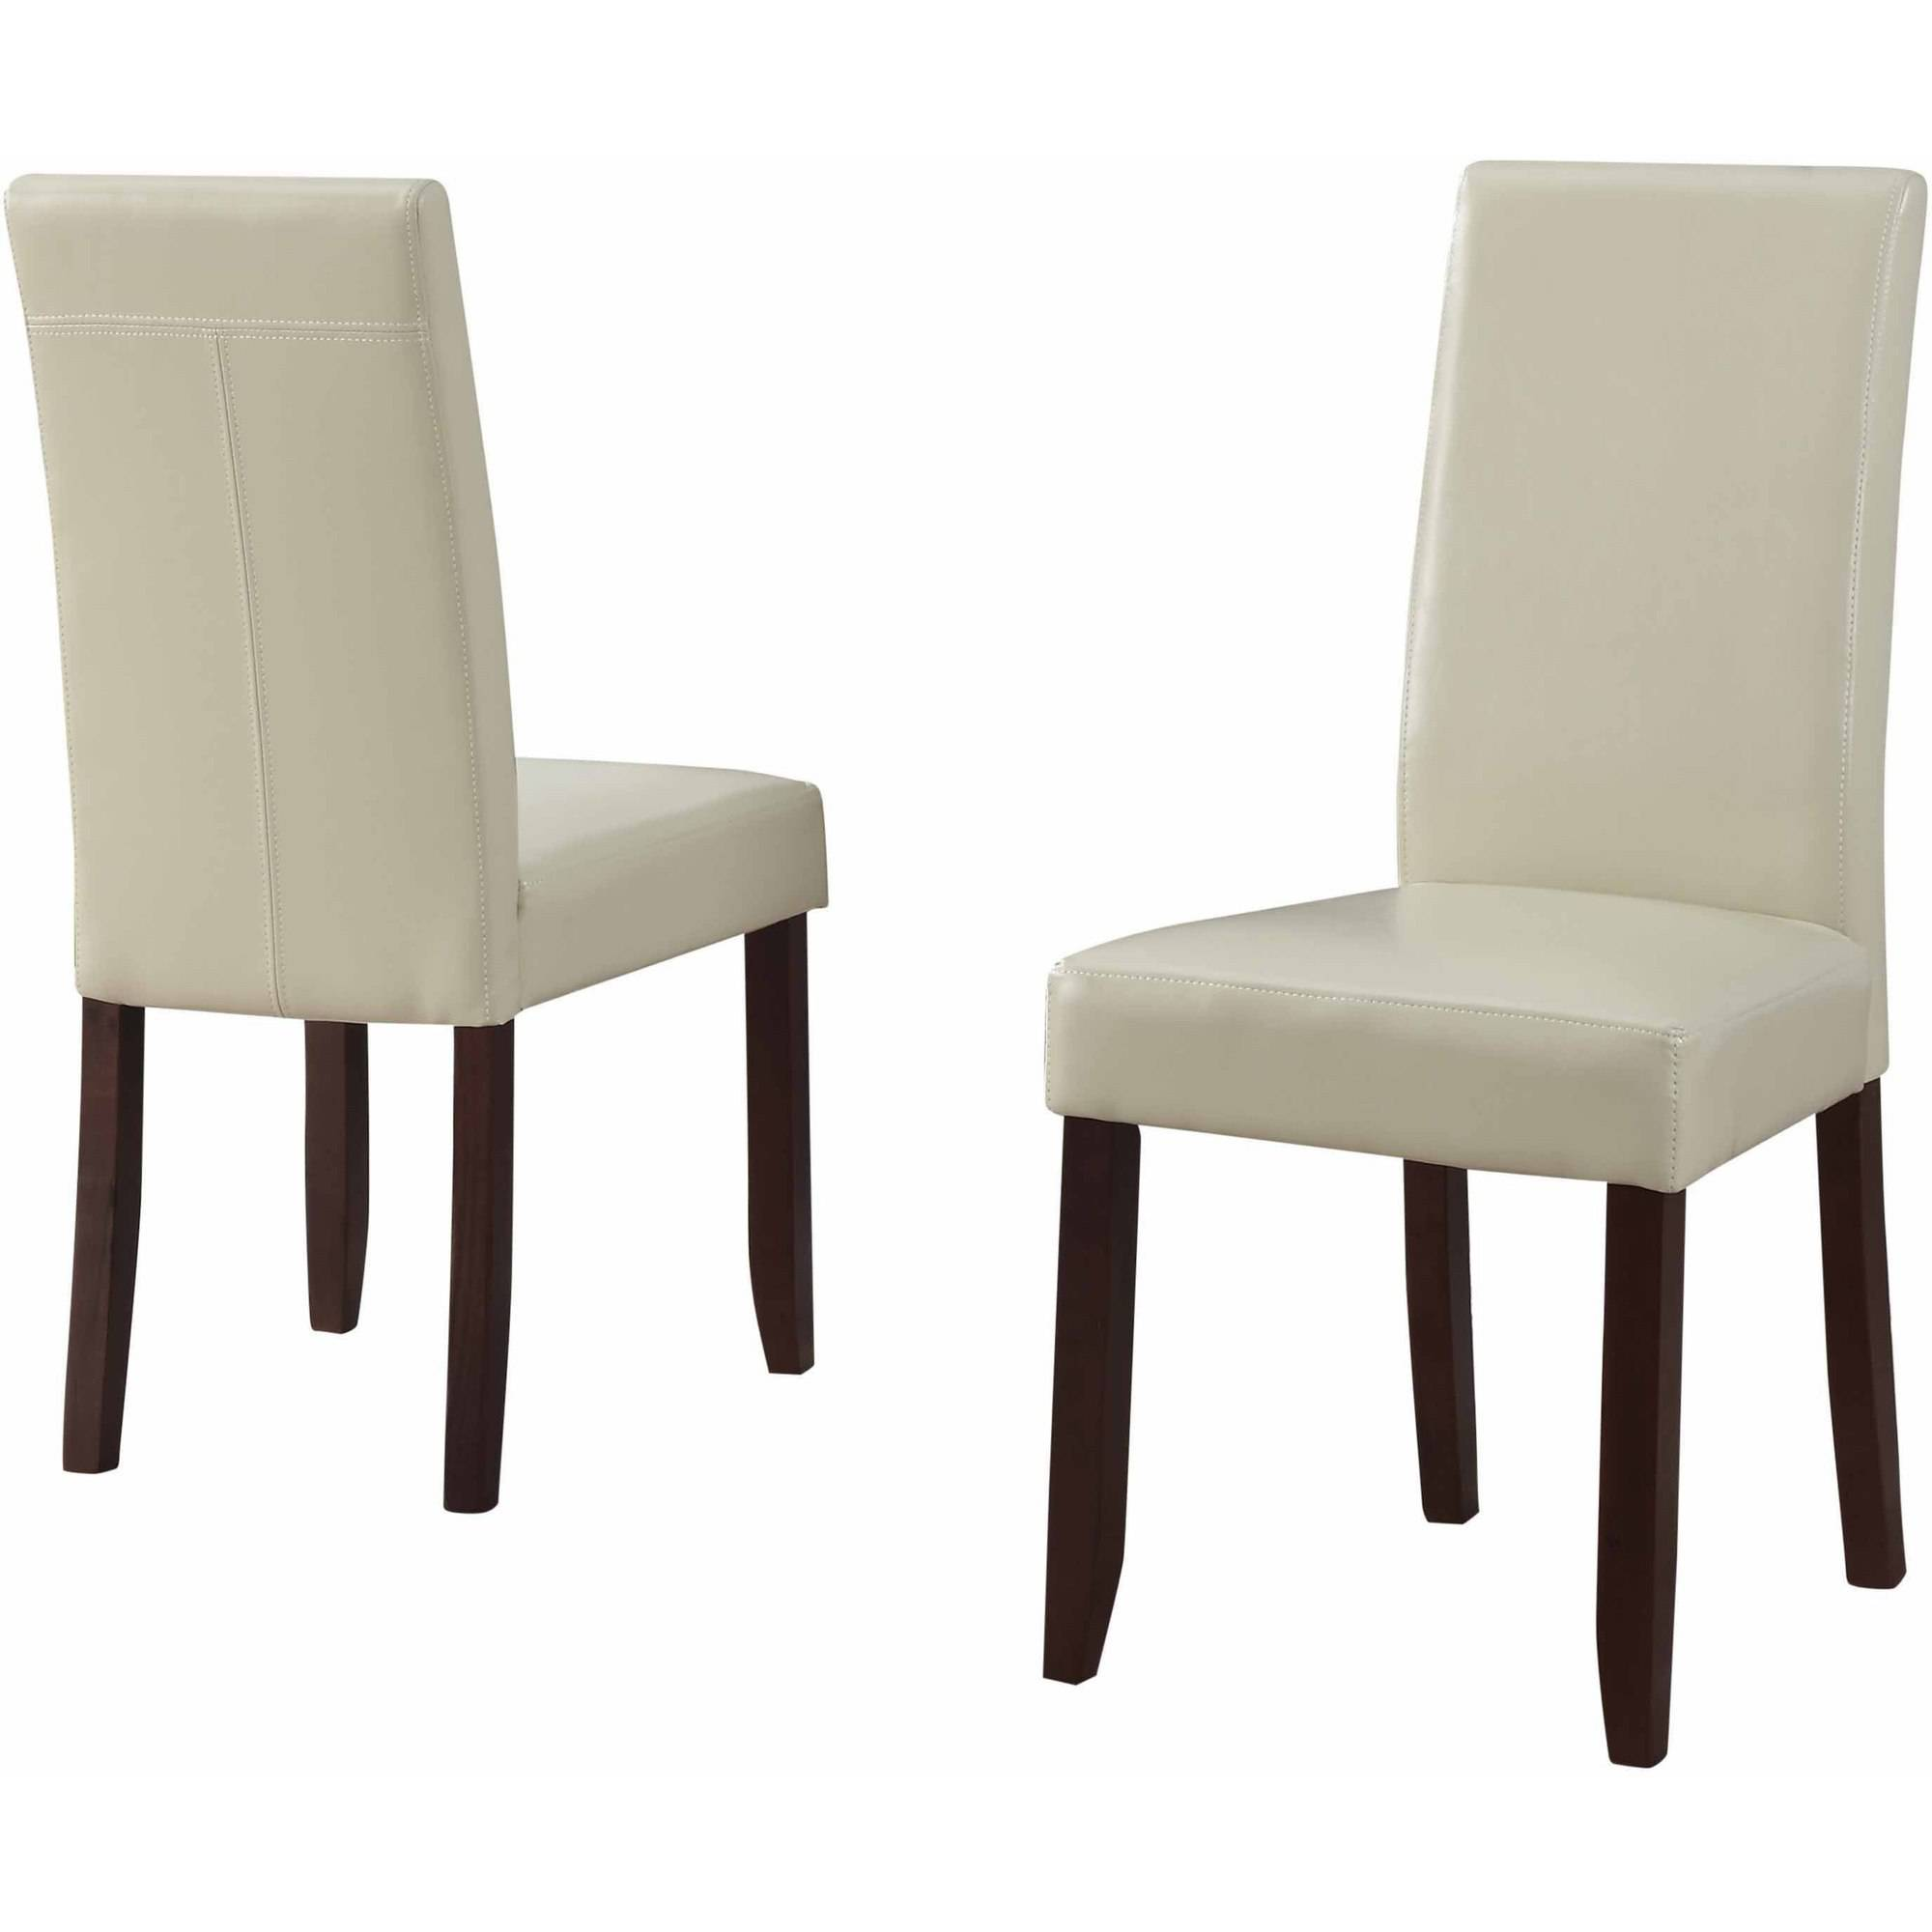 Dining Chairs Walmart